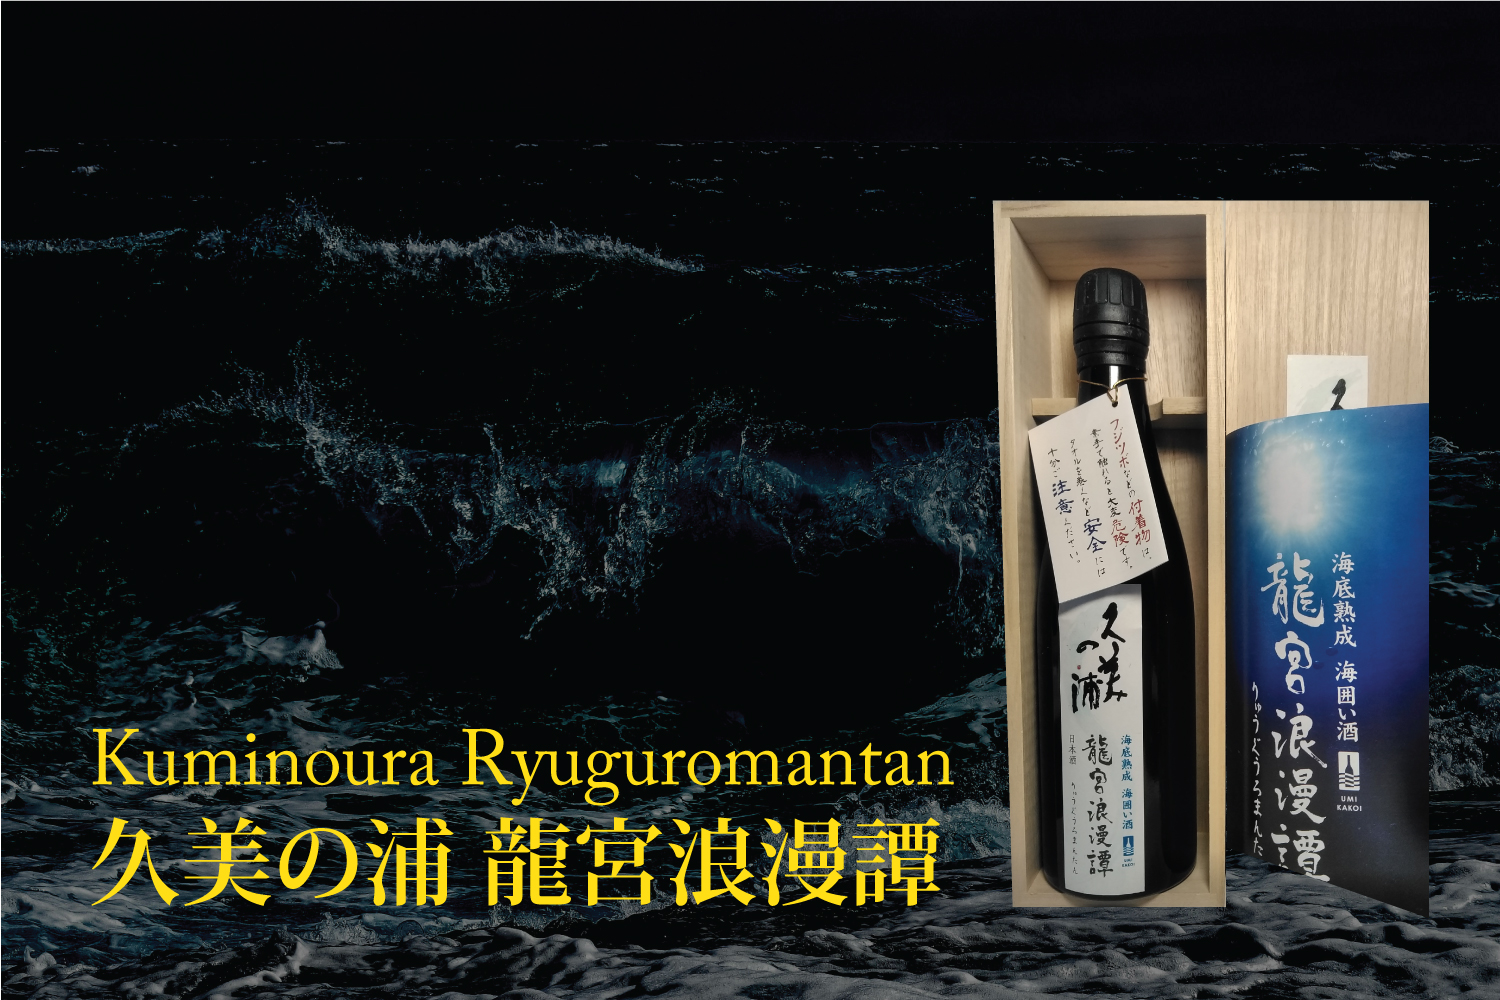 limited-sea-aged-dragon-japanese-sake